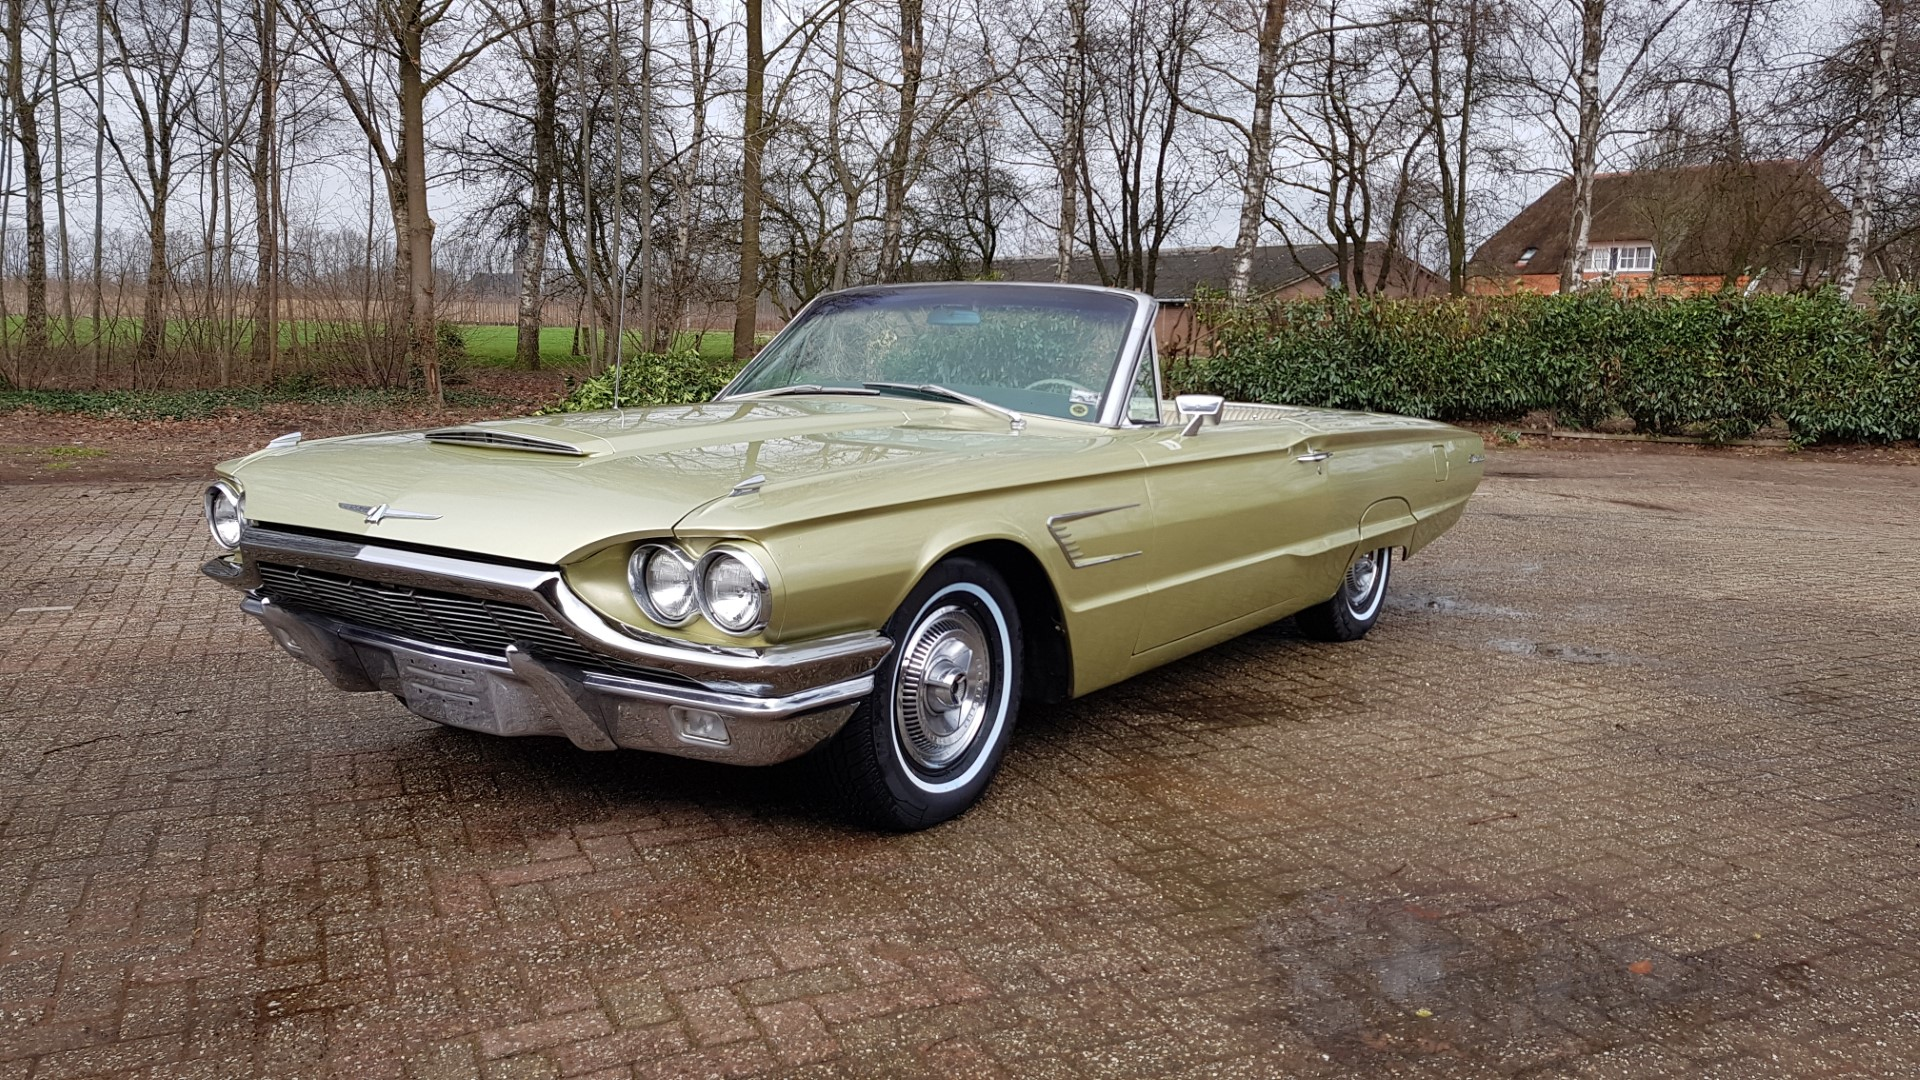 1965 Ford Thunderbird Convertible 390ci - Ivy Gold